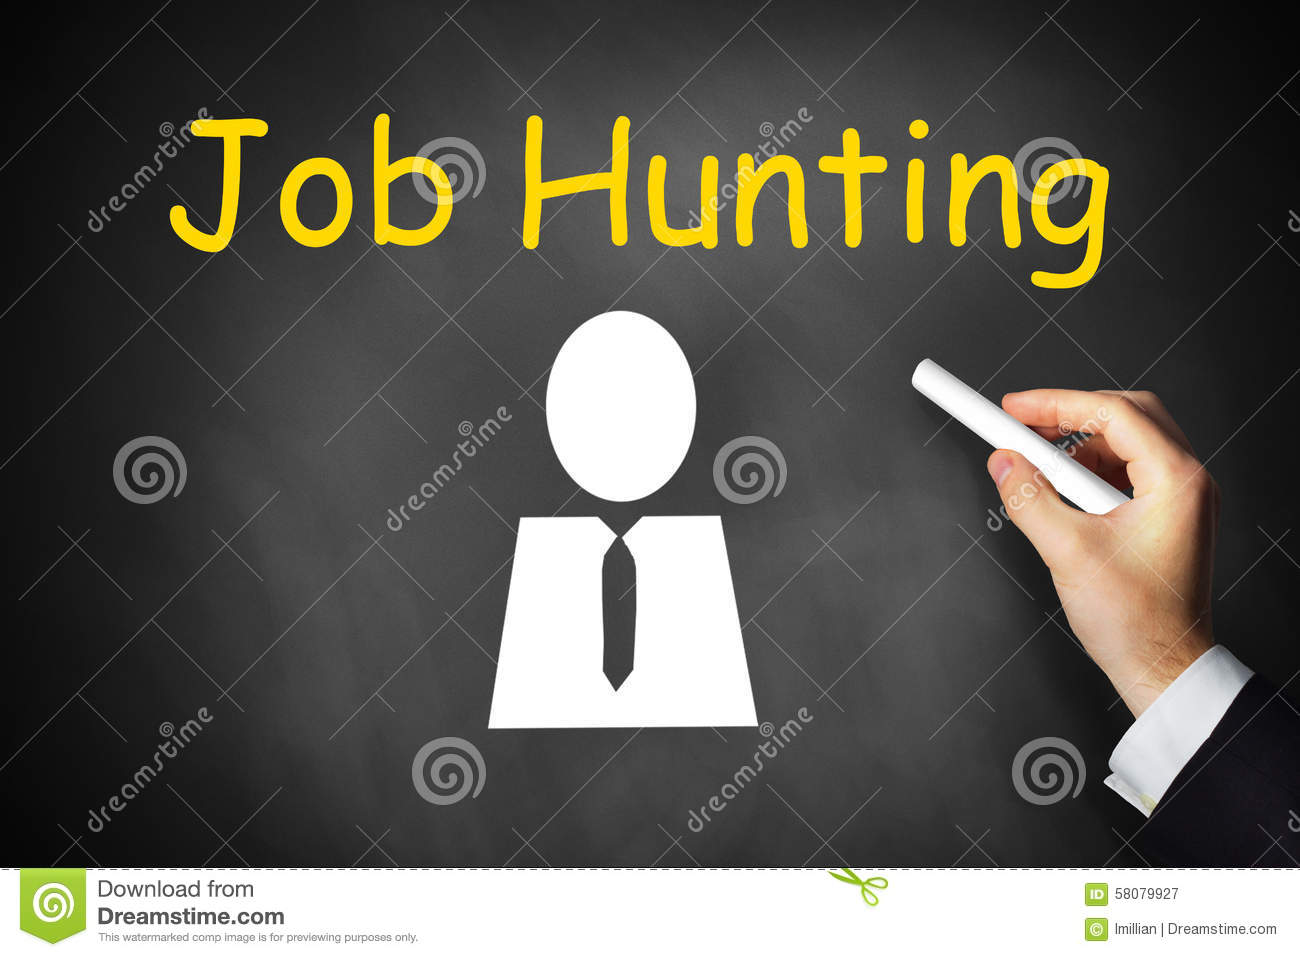 job hunting The job search process is never easy, but there are ways to improve your chances of landing a job.